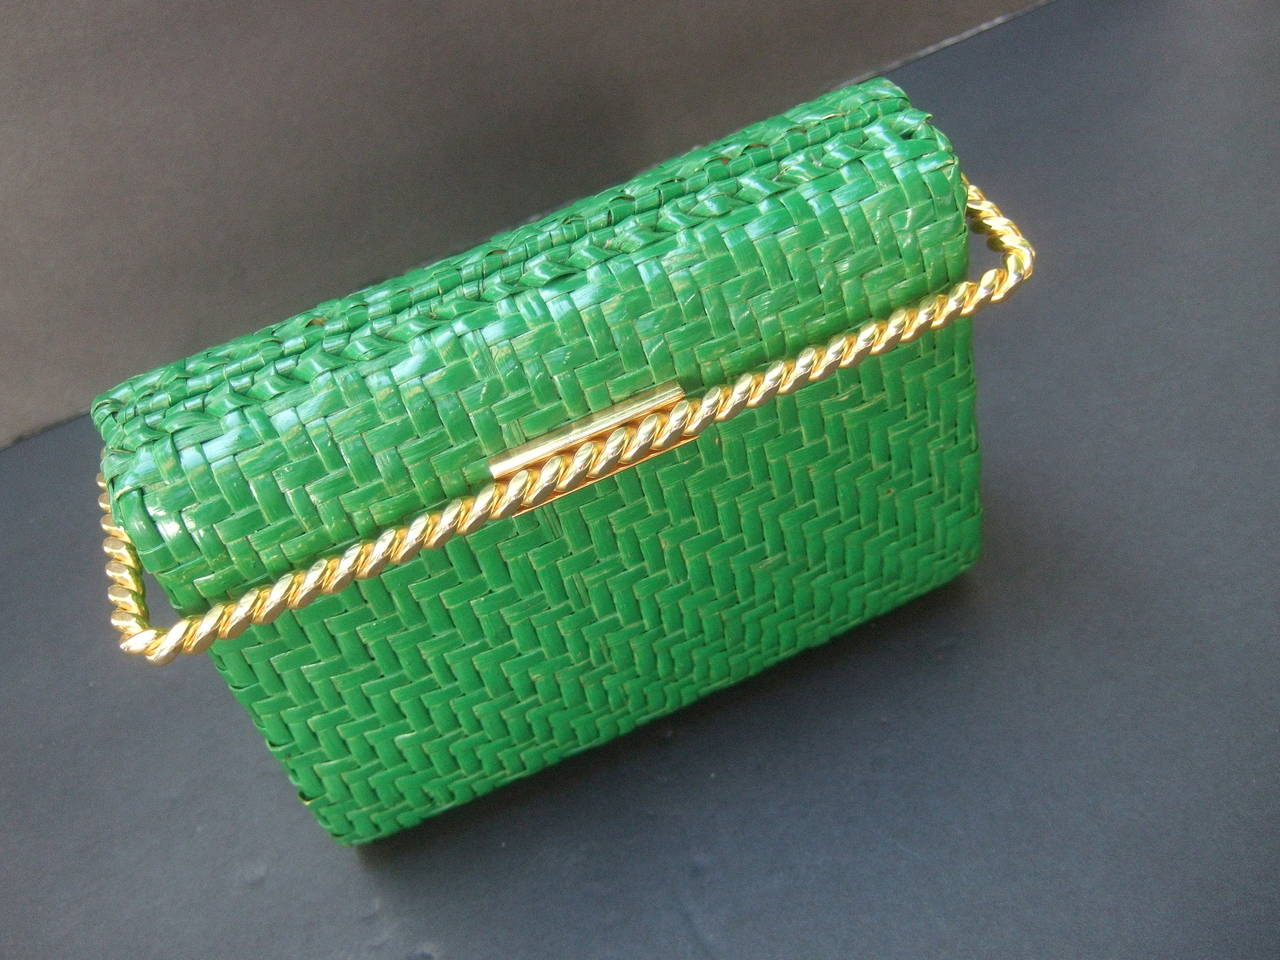 Rodo Italy Emerald Green Gilt Trim Wicker Clutch C 1980 At